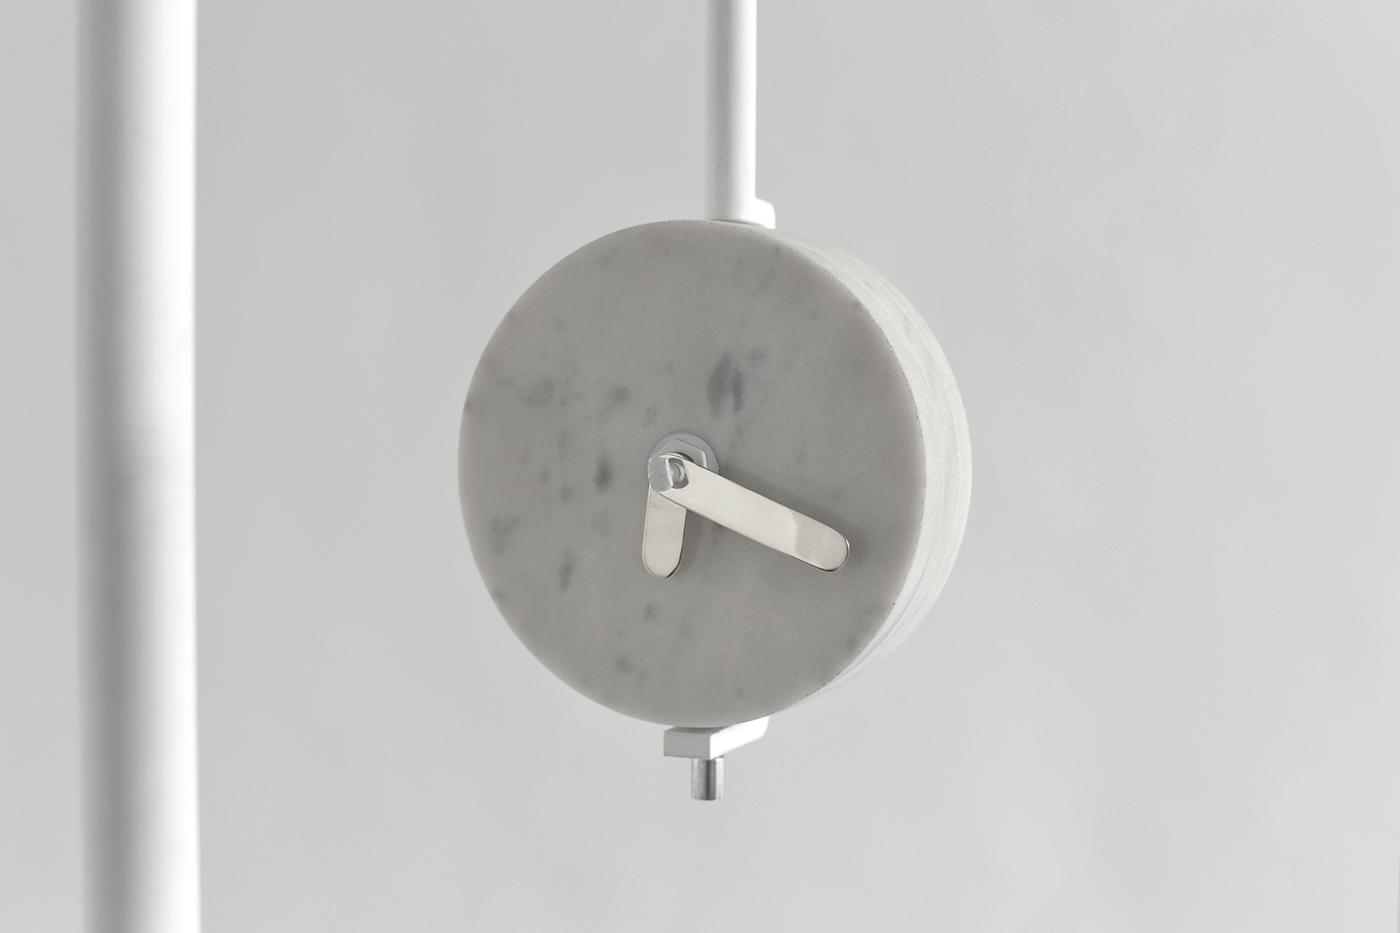 furniture product interiorism industrialdesign silver clock time